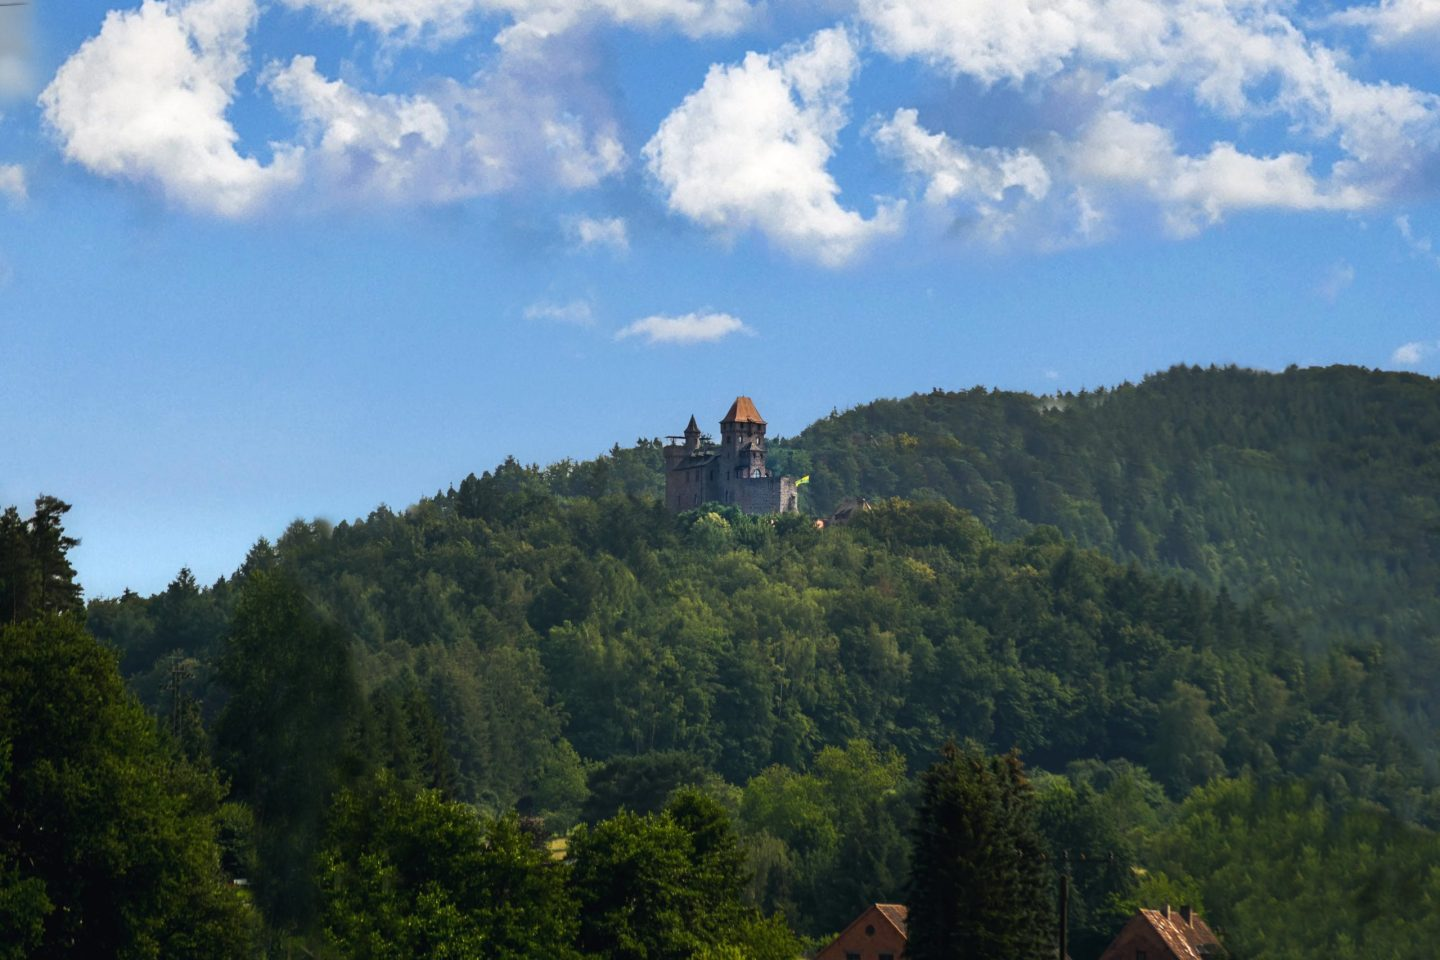 Burg Berwartstein in the forest